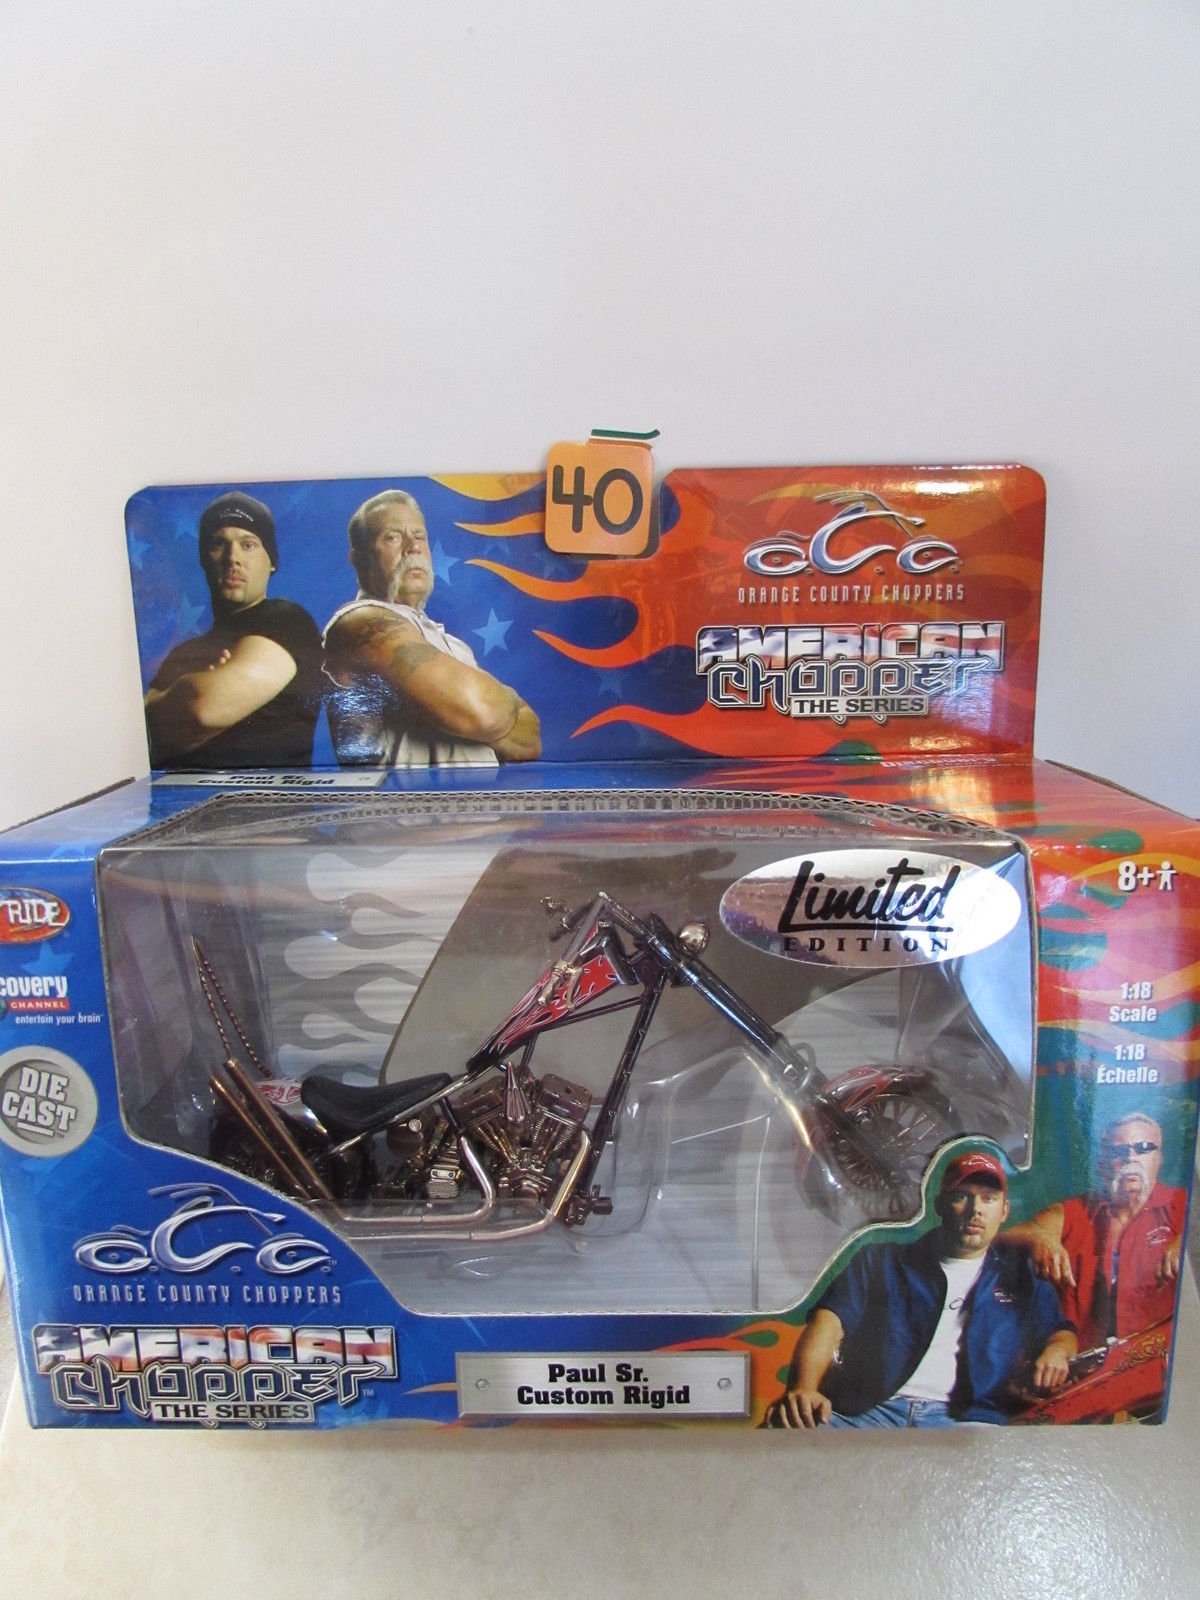 AMERICAN CHOPPER THE SERIES - PAUL SR. CUSTOM RIGID SCALE 1:18